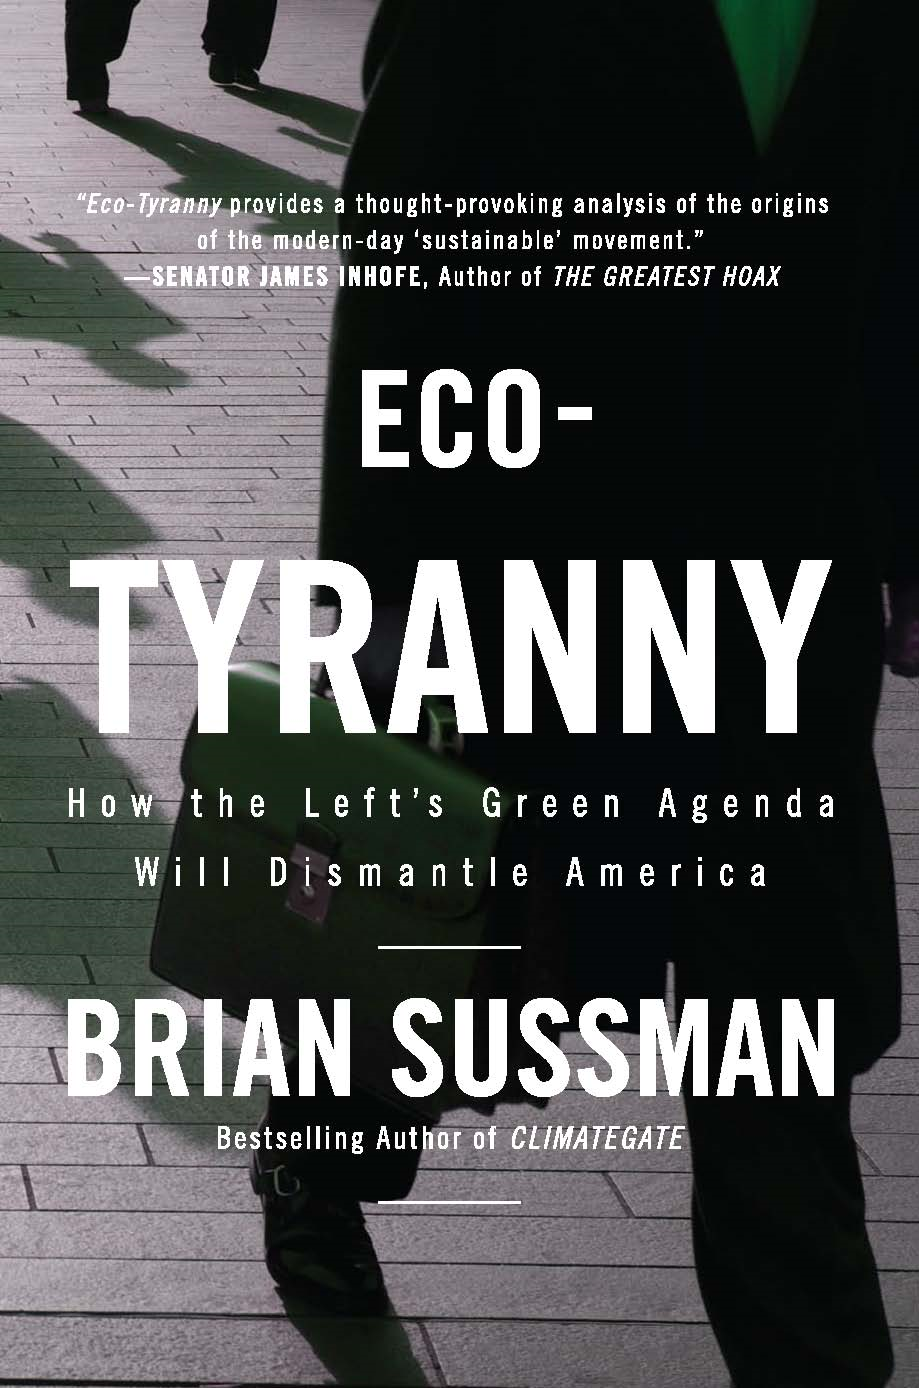 Eco-Tyranny: How the Left's Green Agenda will Dismantle America By: Brian Sussman